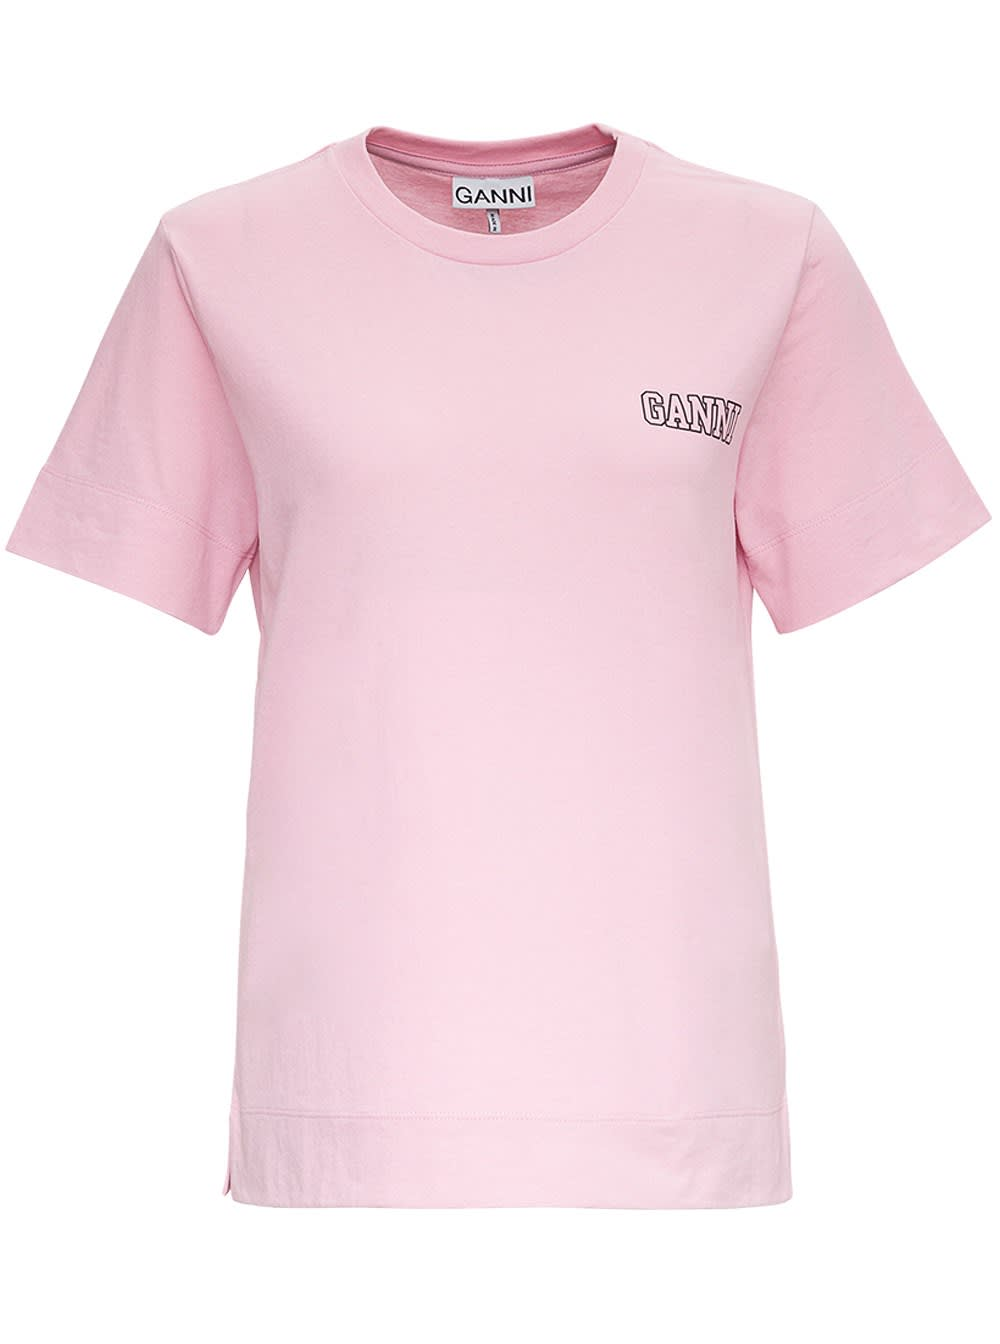 Ganni Thin Software Recycled Jersey T-shirt In Pink